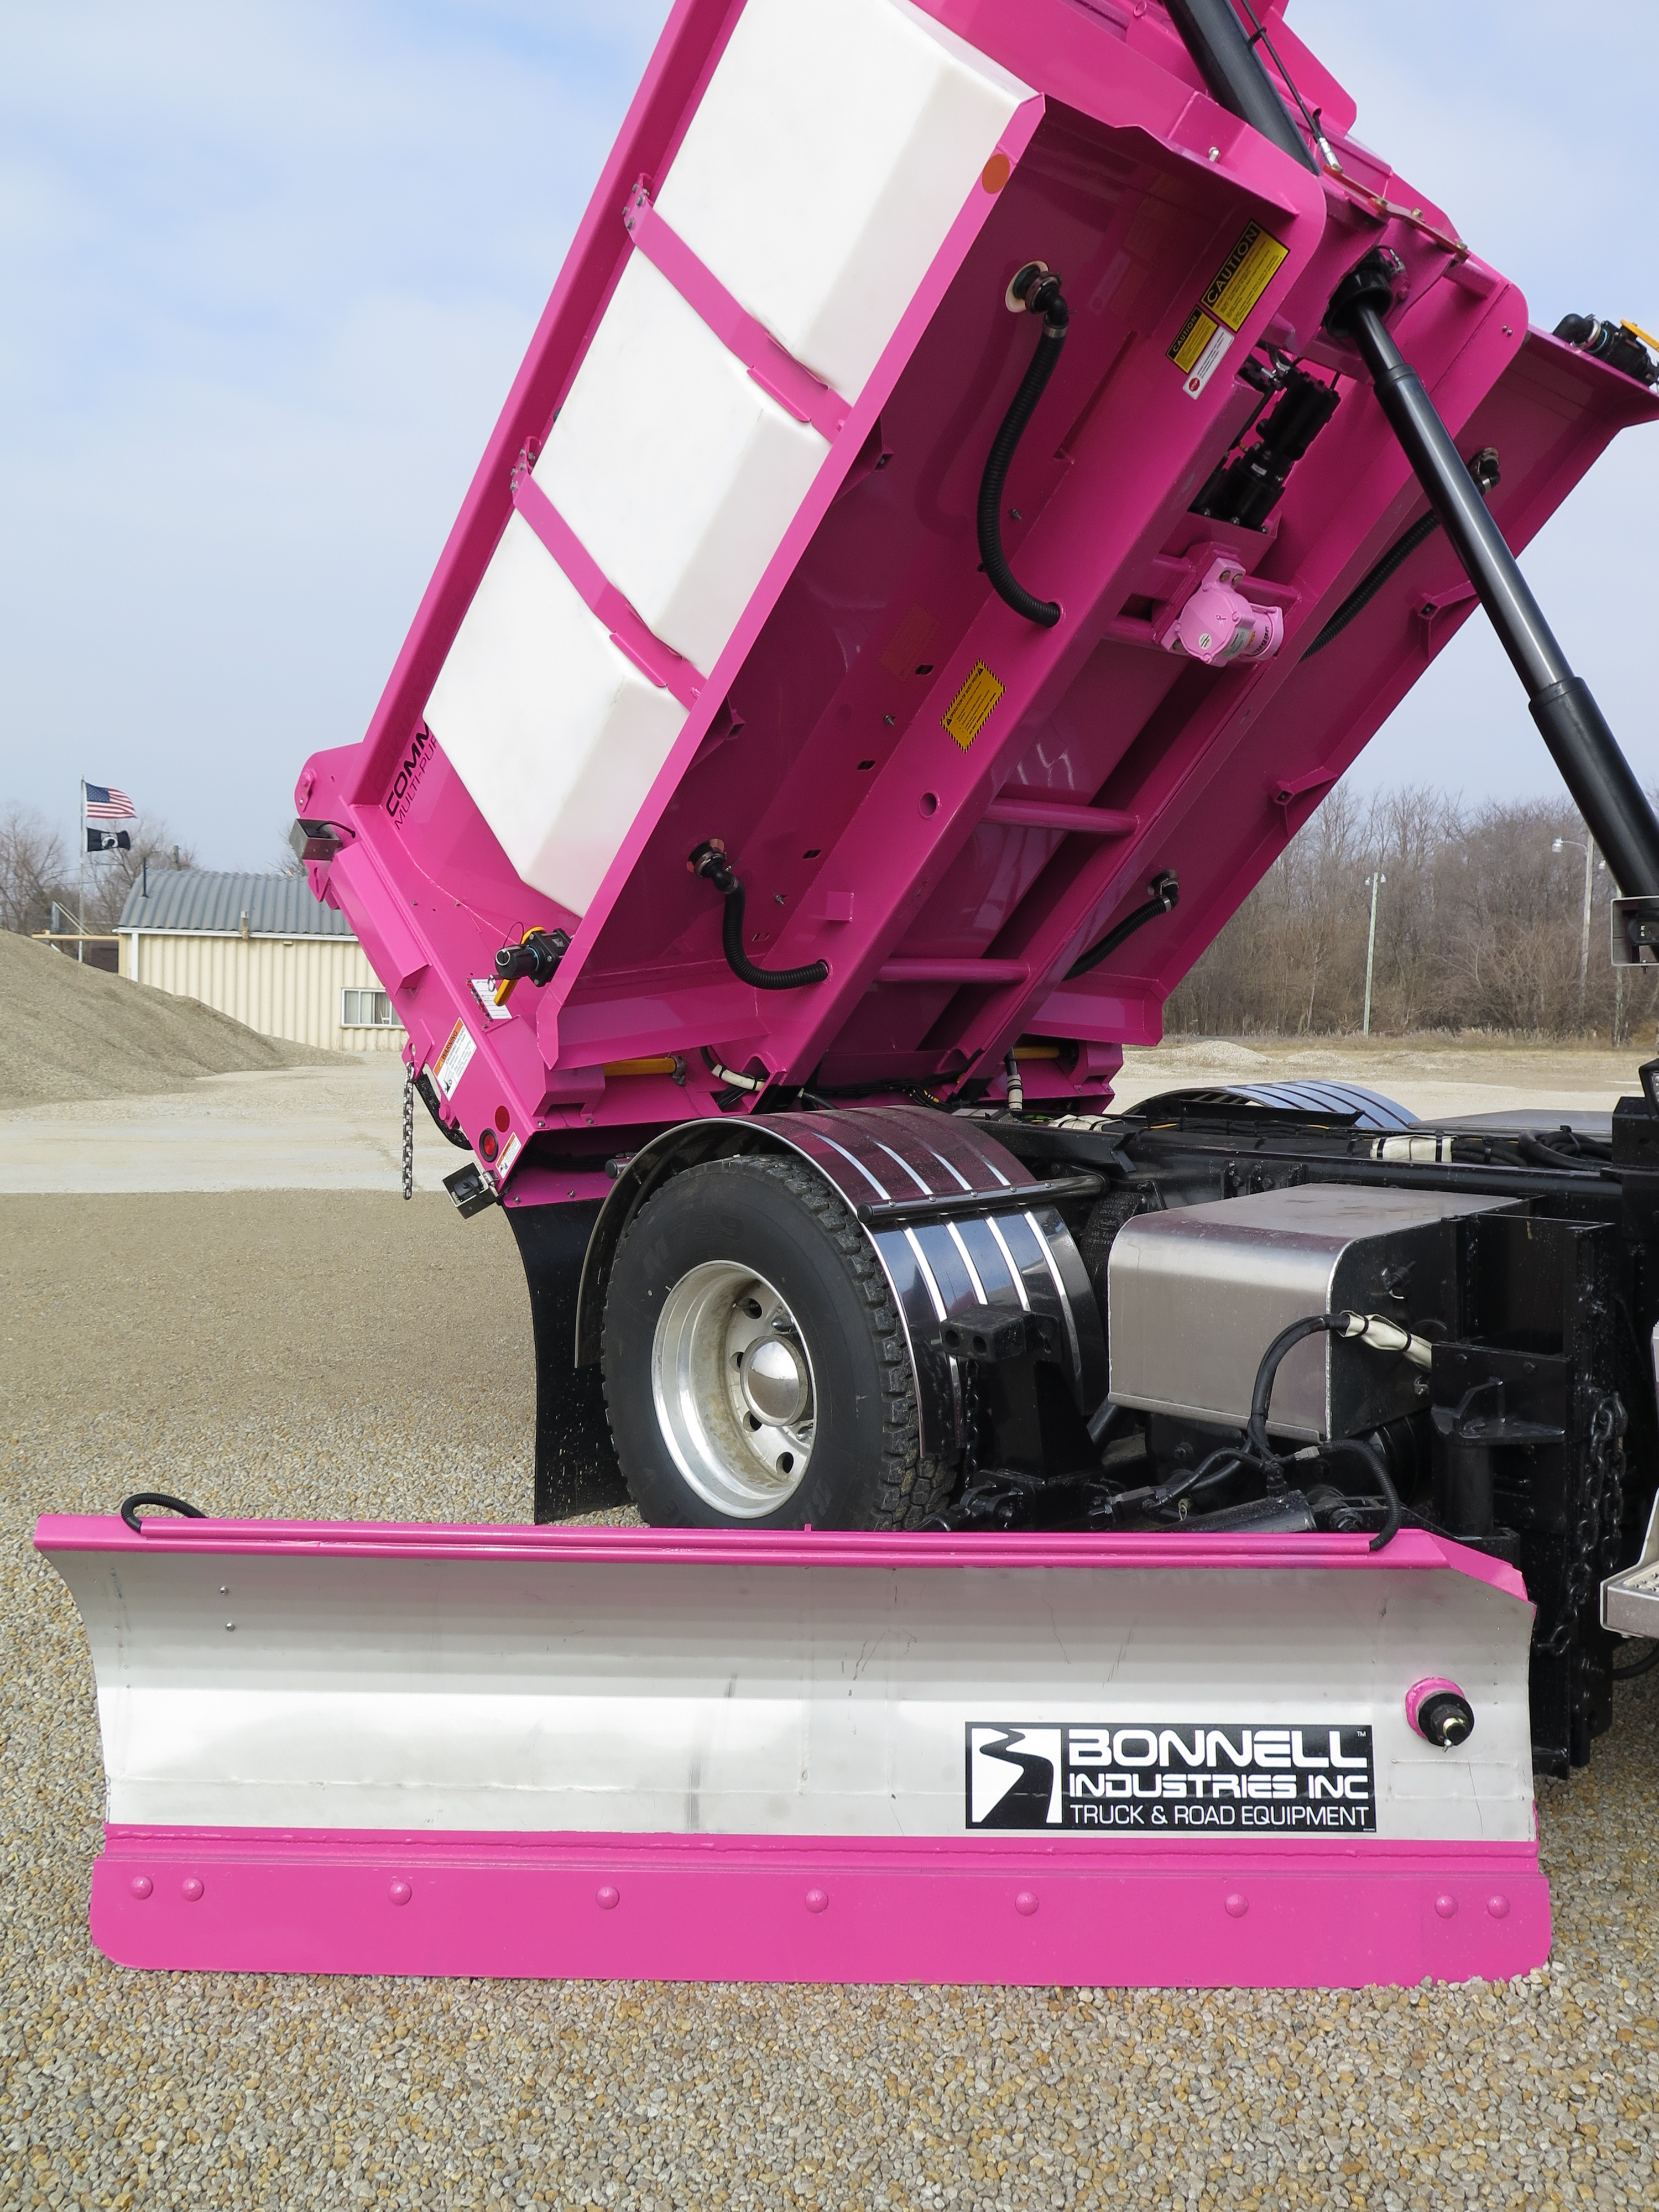 truck vibrators help completely empty the load as well as prevent drivers from manually intervening